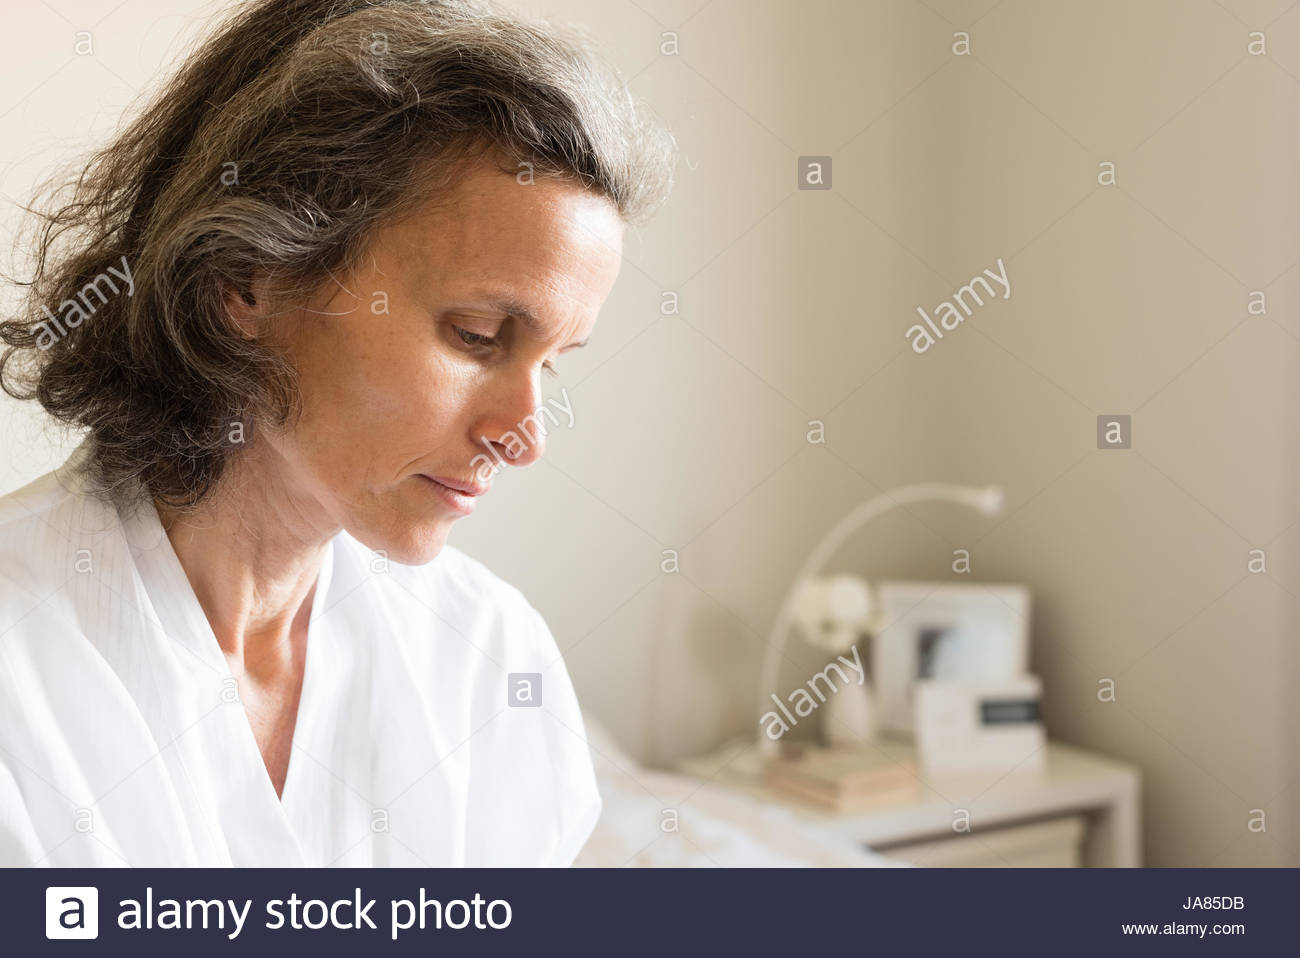 Profile view of middle aged woman with grey hair seated on bed in white robe (selective focus) - Stock Image